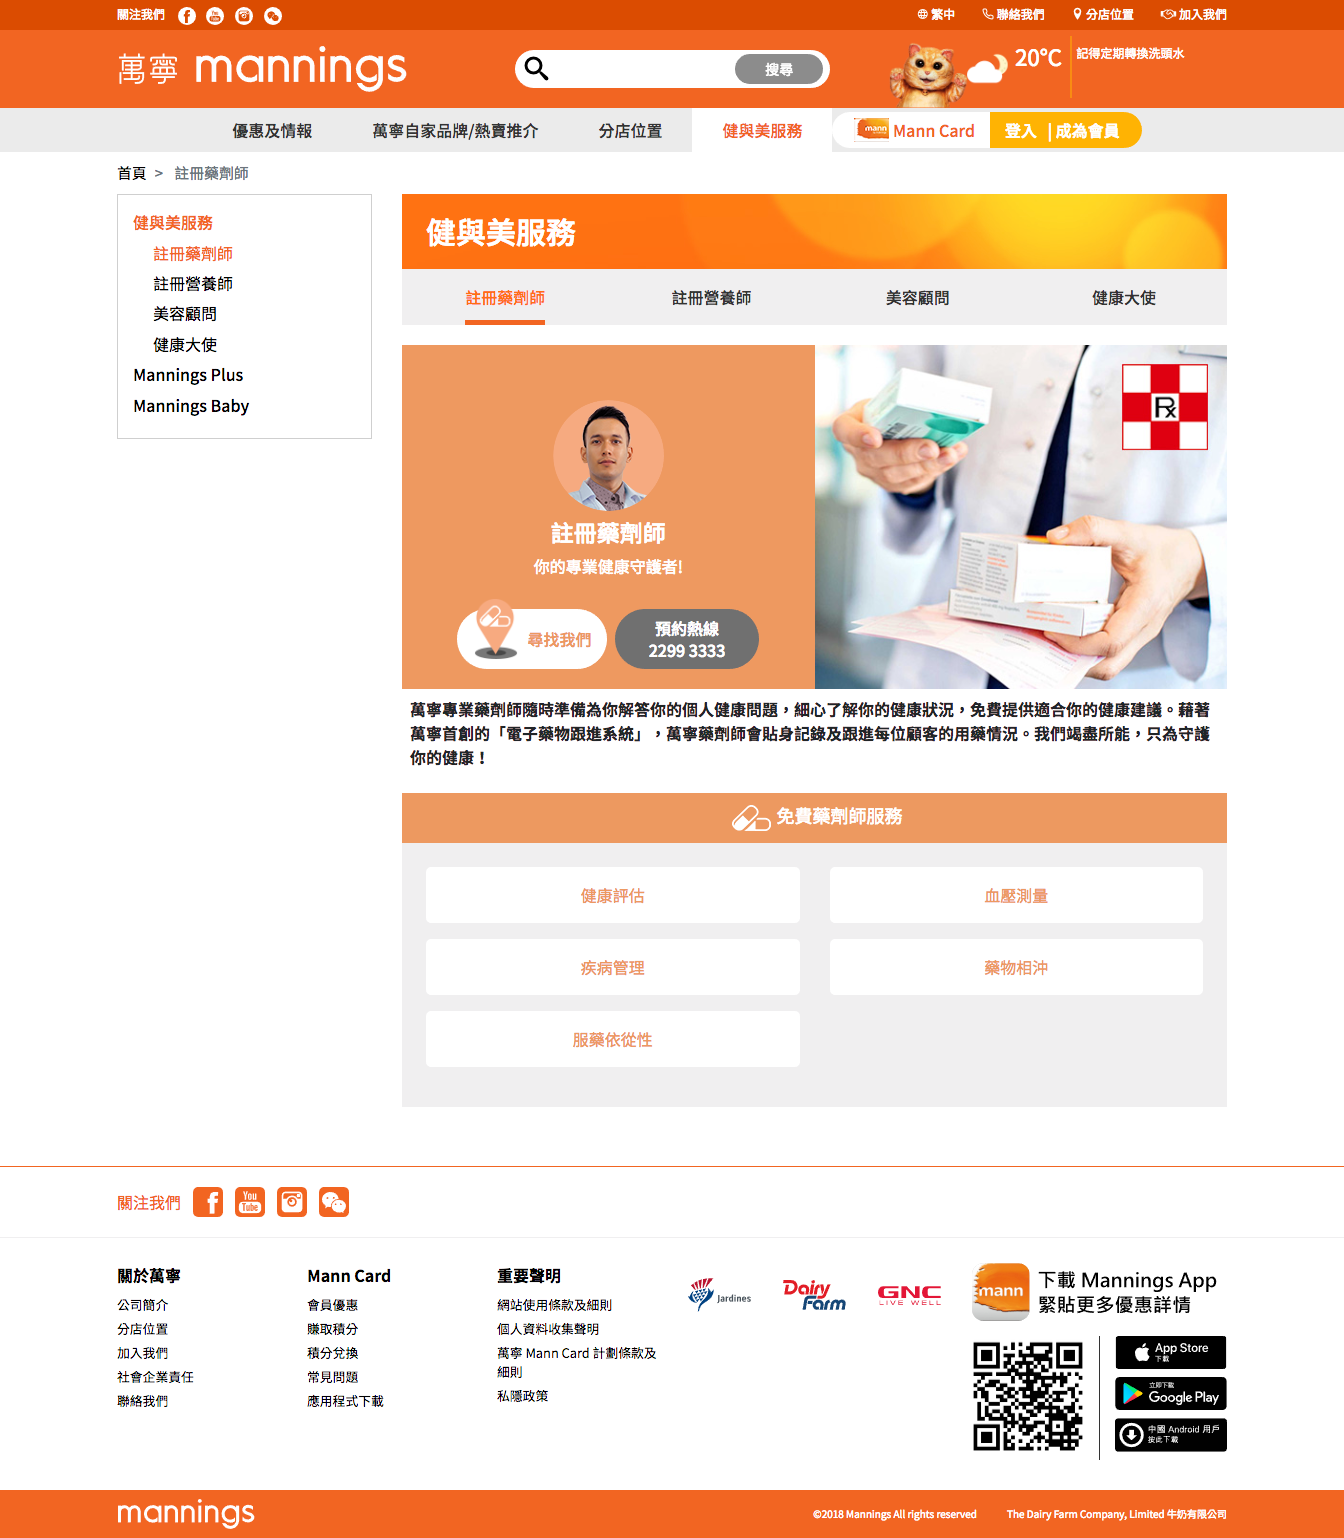 screencapture-mannings-hk-zh-hk-services-pharmacist-2018-12-19-19_56_59